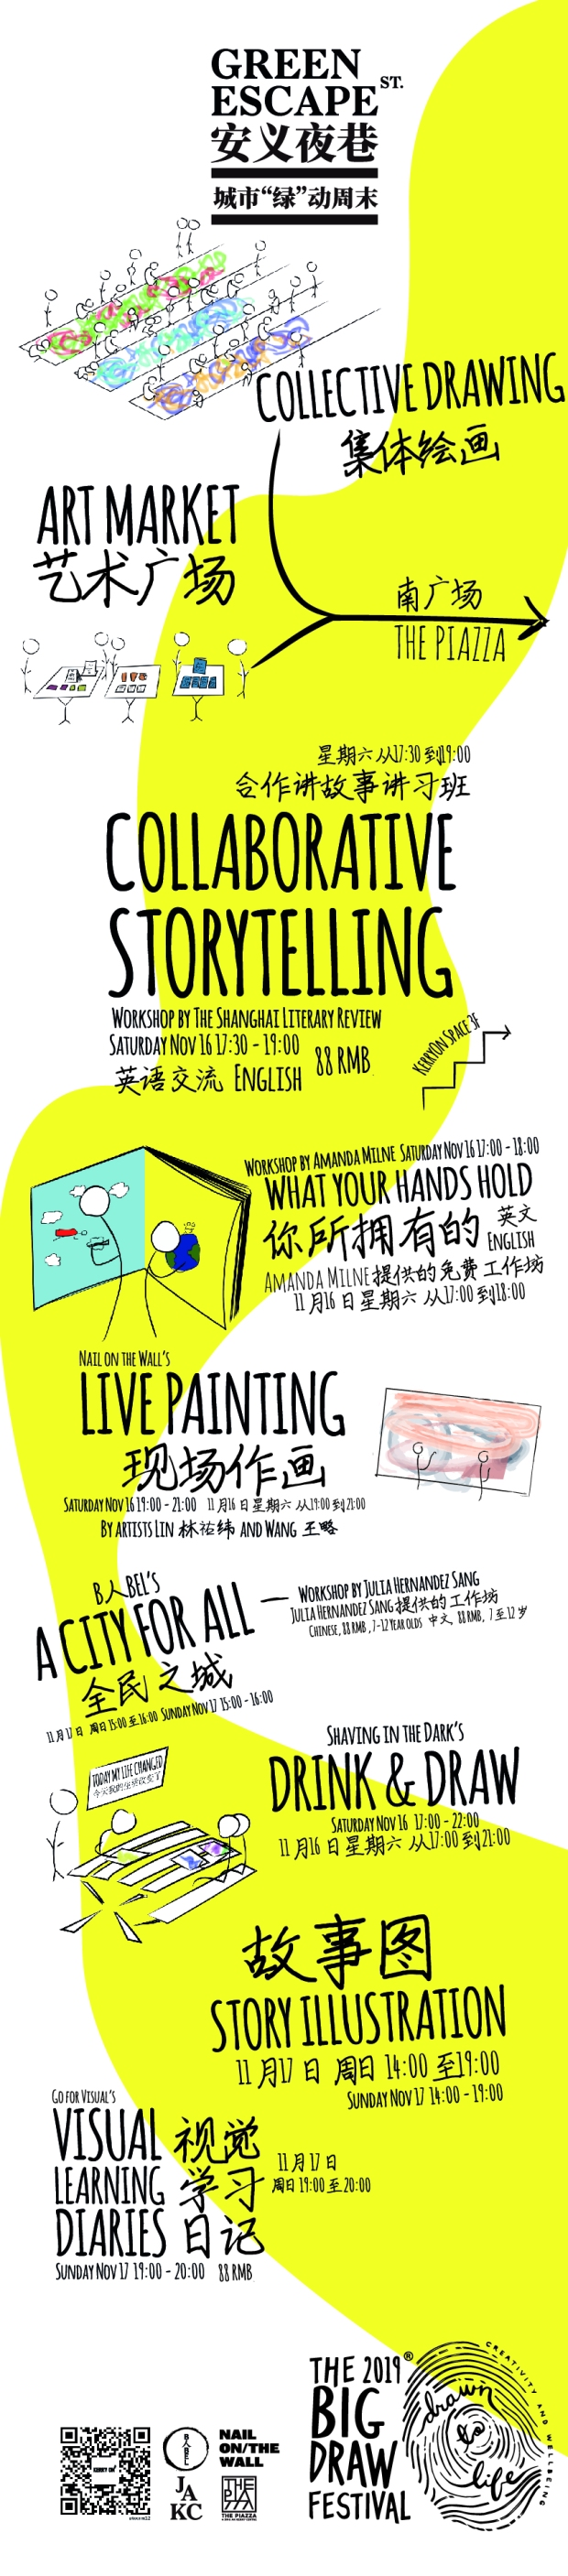 ---The full list of The 2019 Big Draw Festival |2019绘画节艺术活动清单